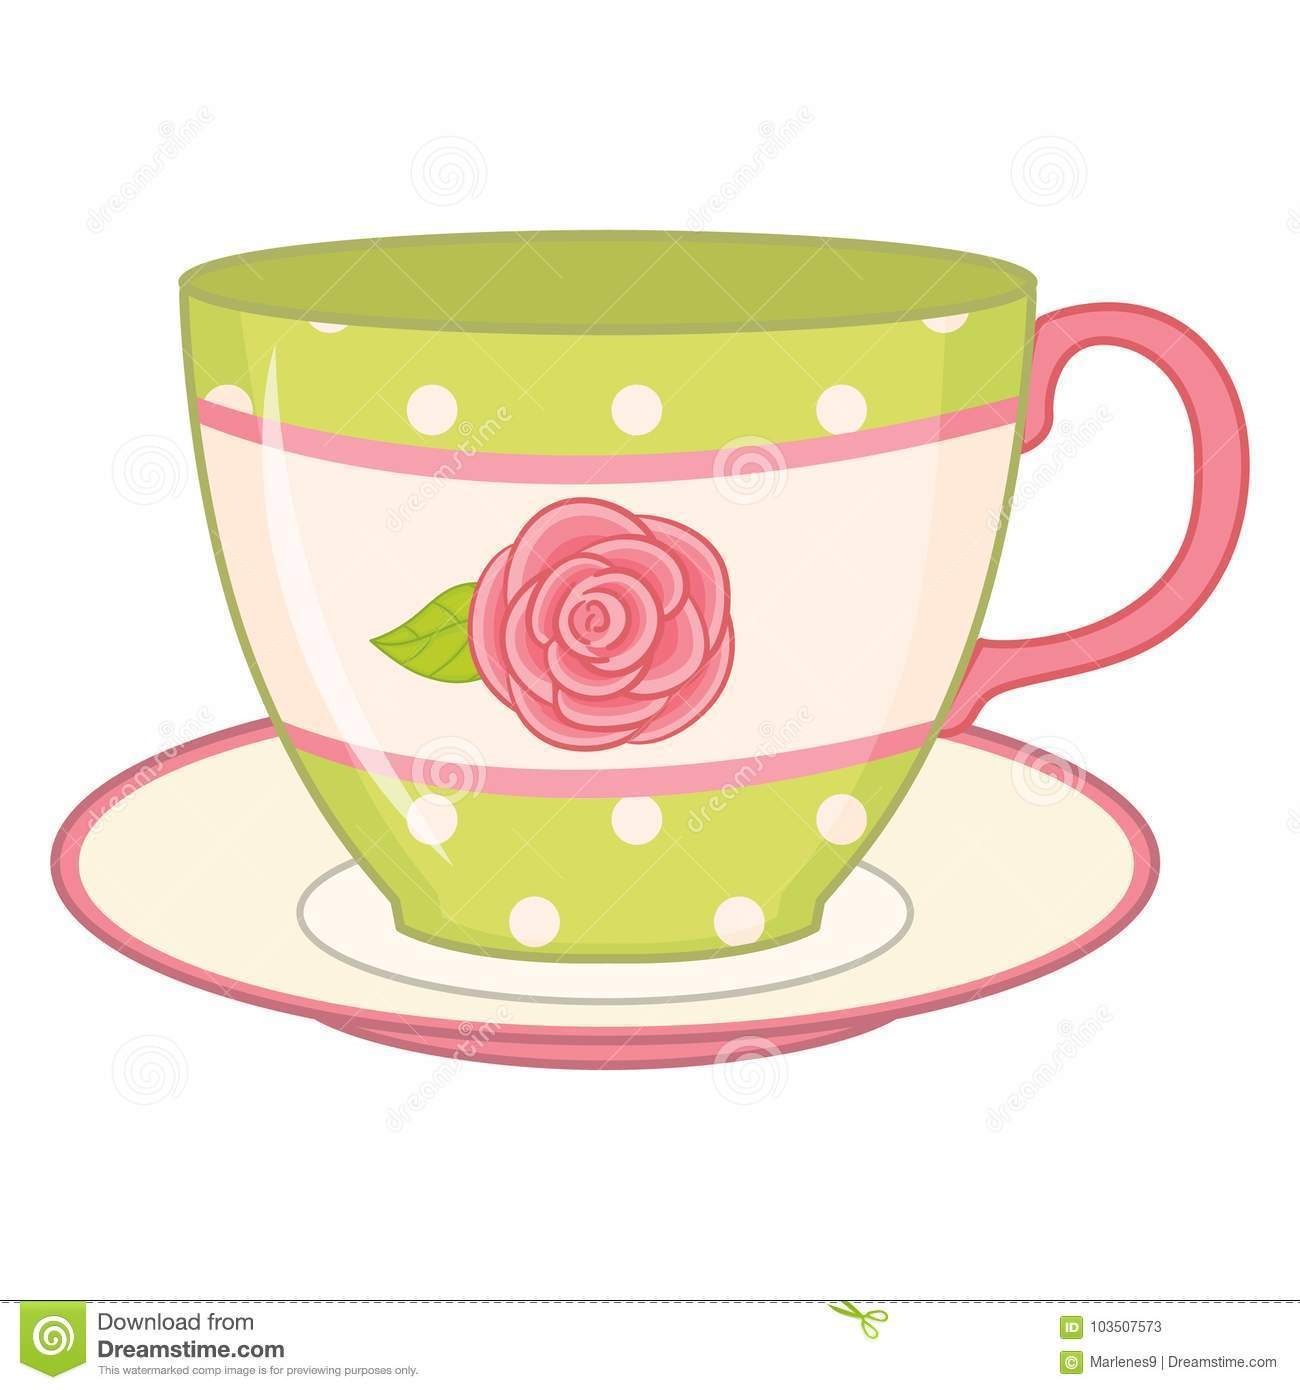 clip royalty free download Teacup and saucer clipart. Portal